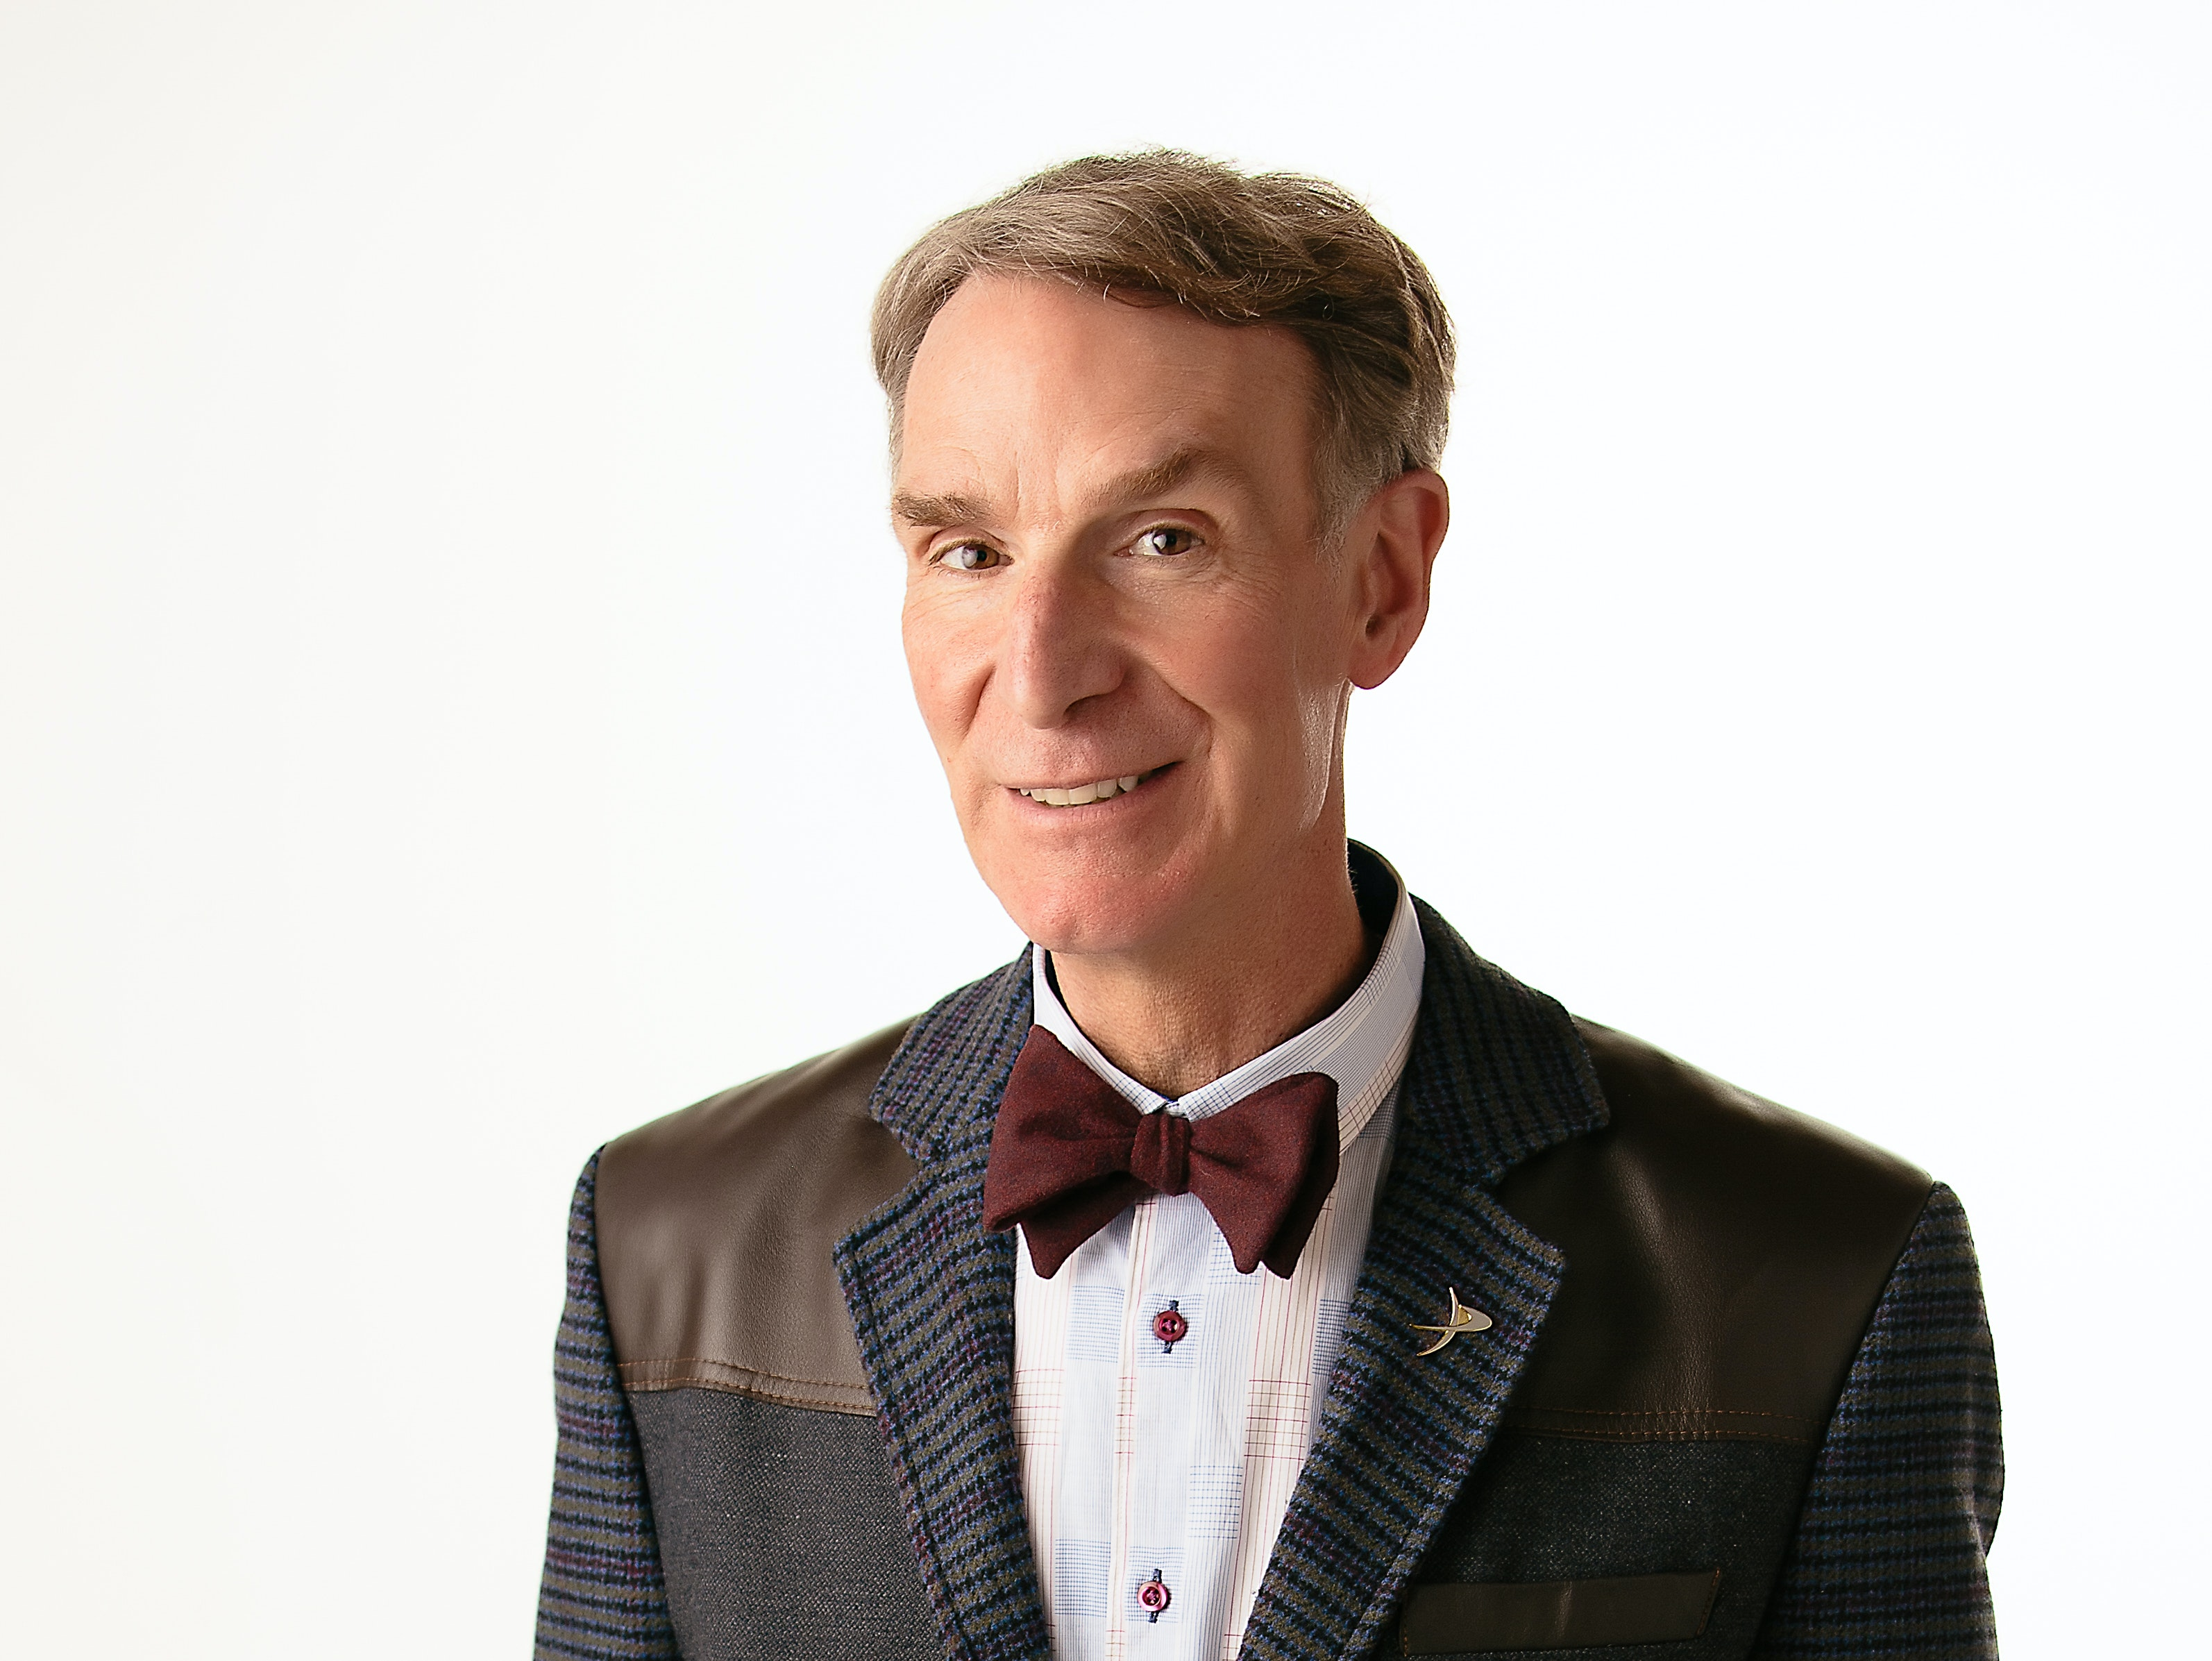 Beloved Science Icon Bill Nye's 61st Birthday Is Today